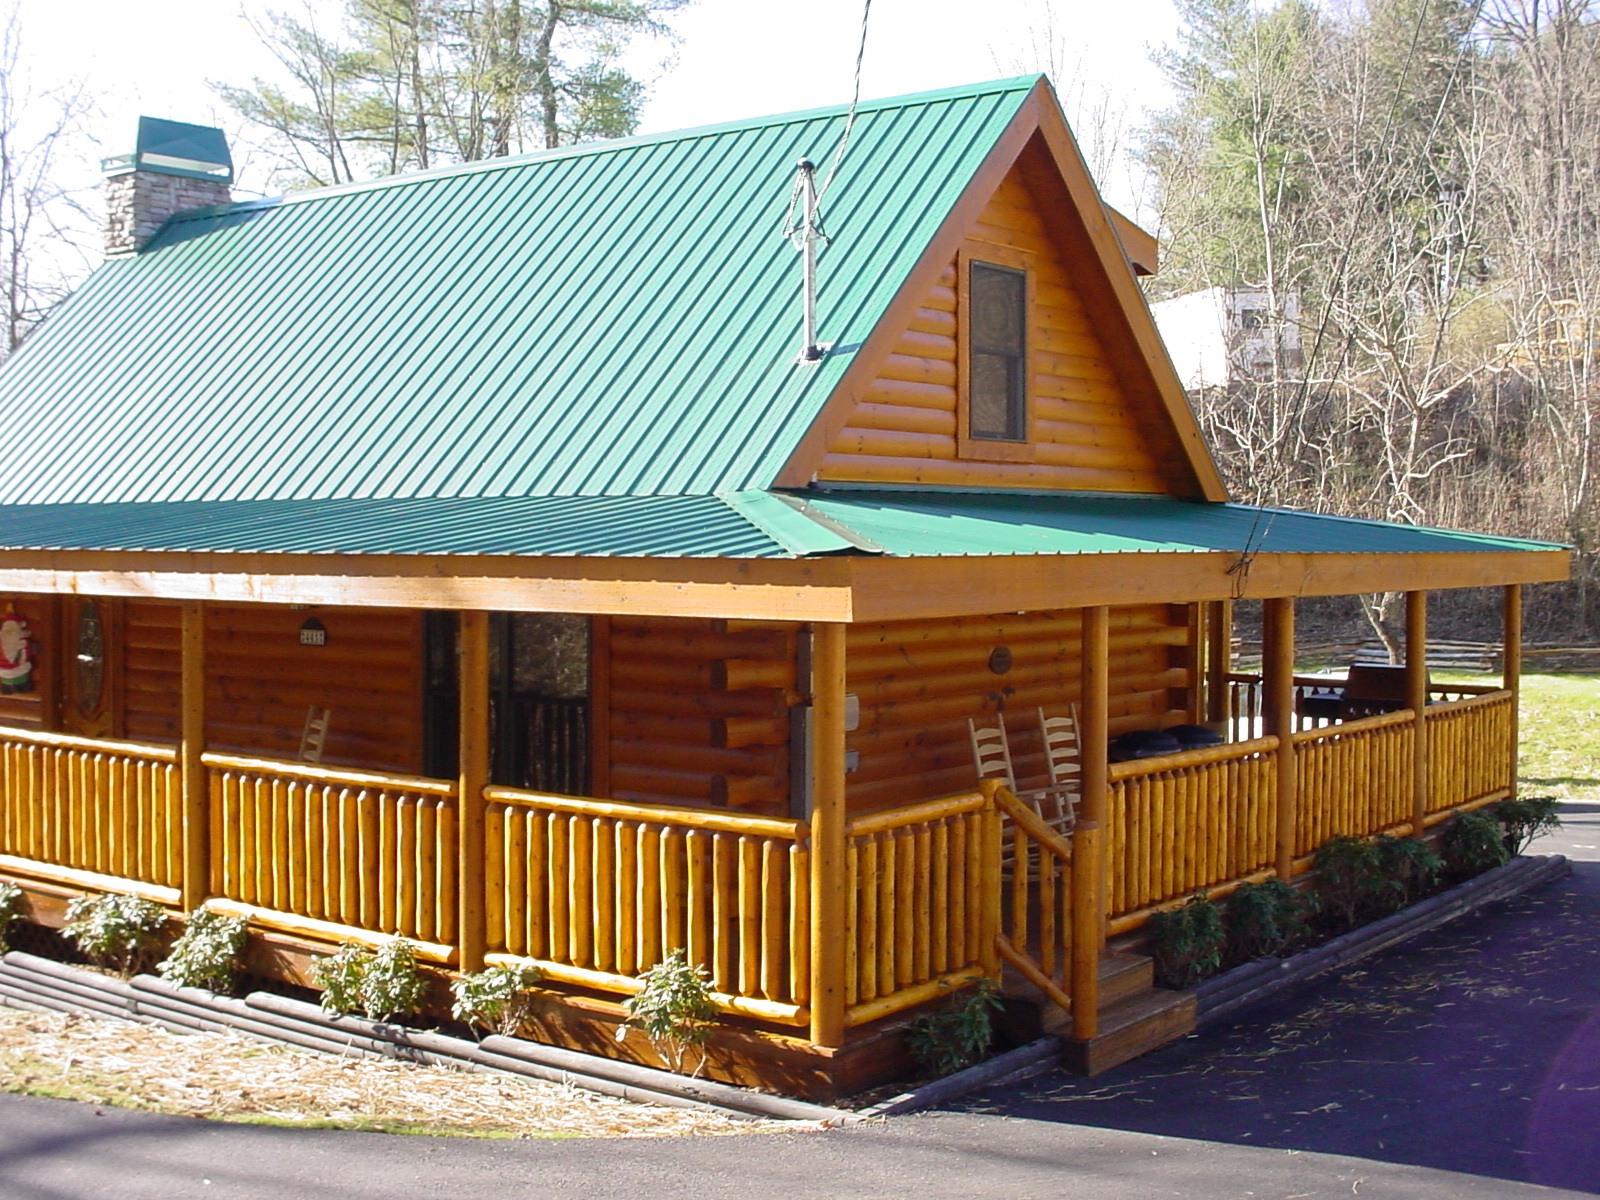 cabin forge rentals tennessee chalet cabins chalets conveneinet fireside the pigeon to resorts parkway heavensentpigeonforgecabin and